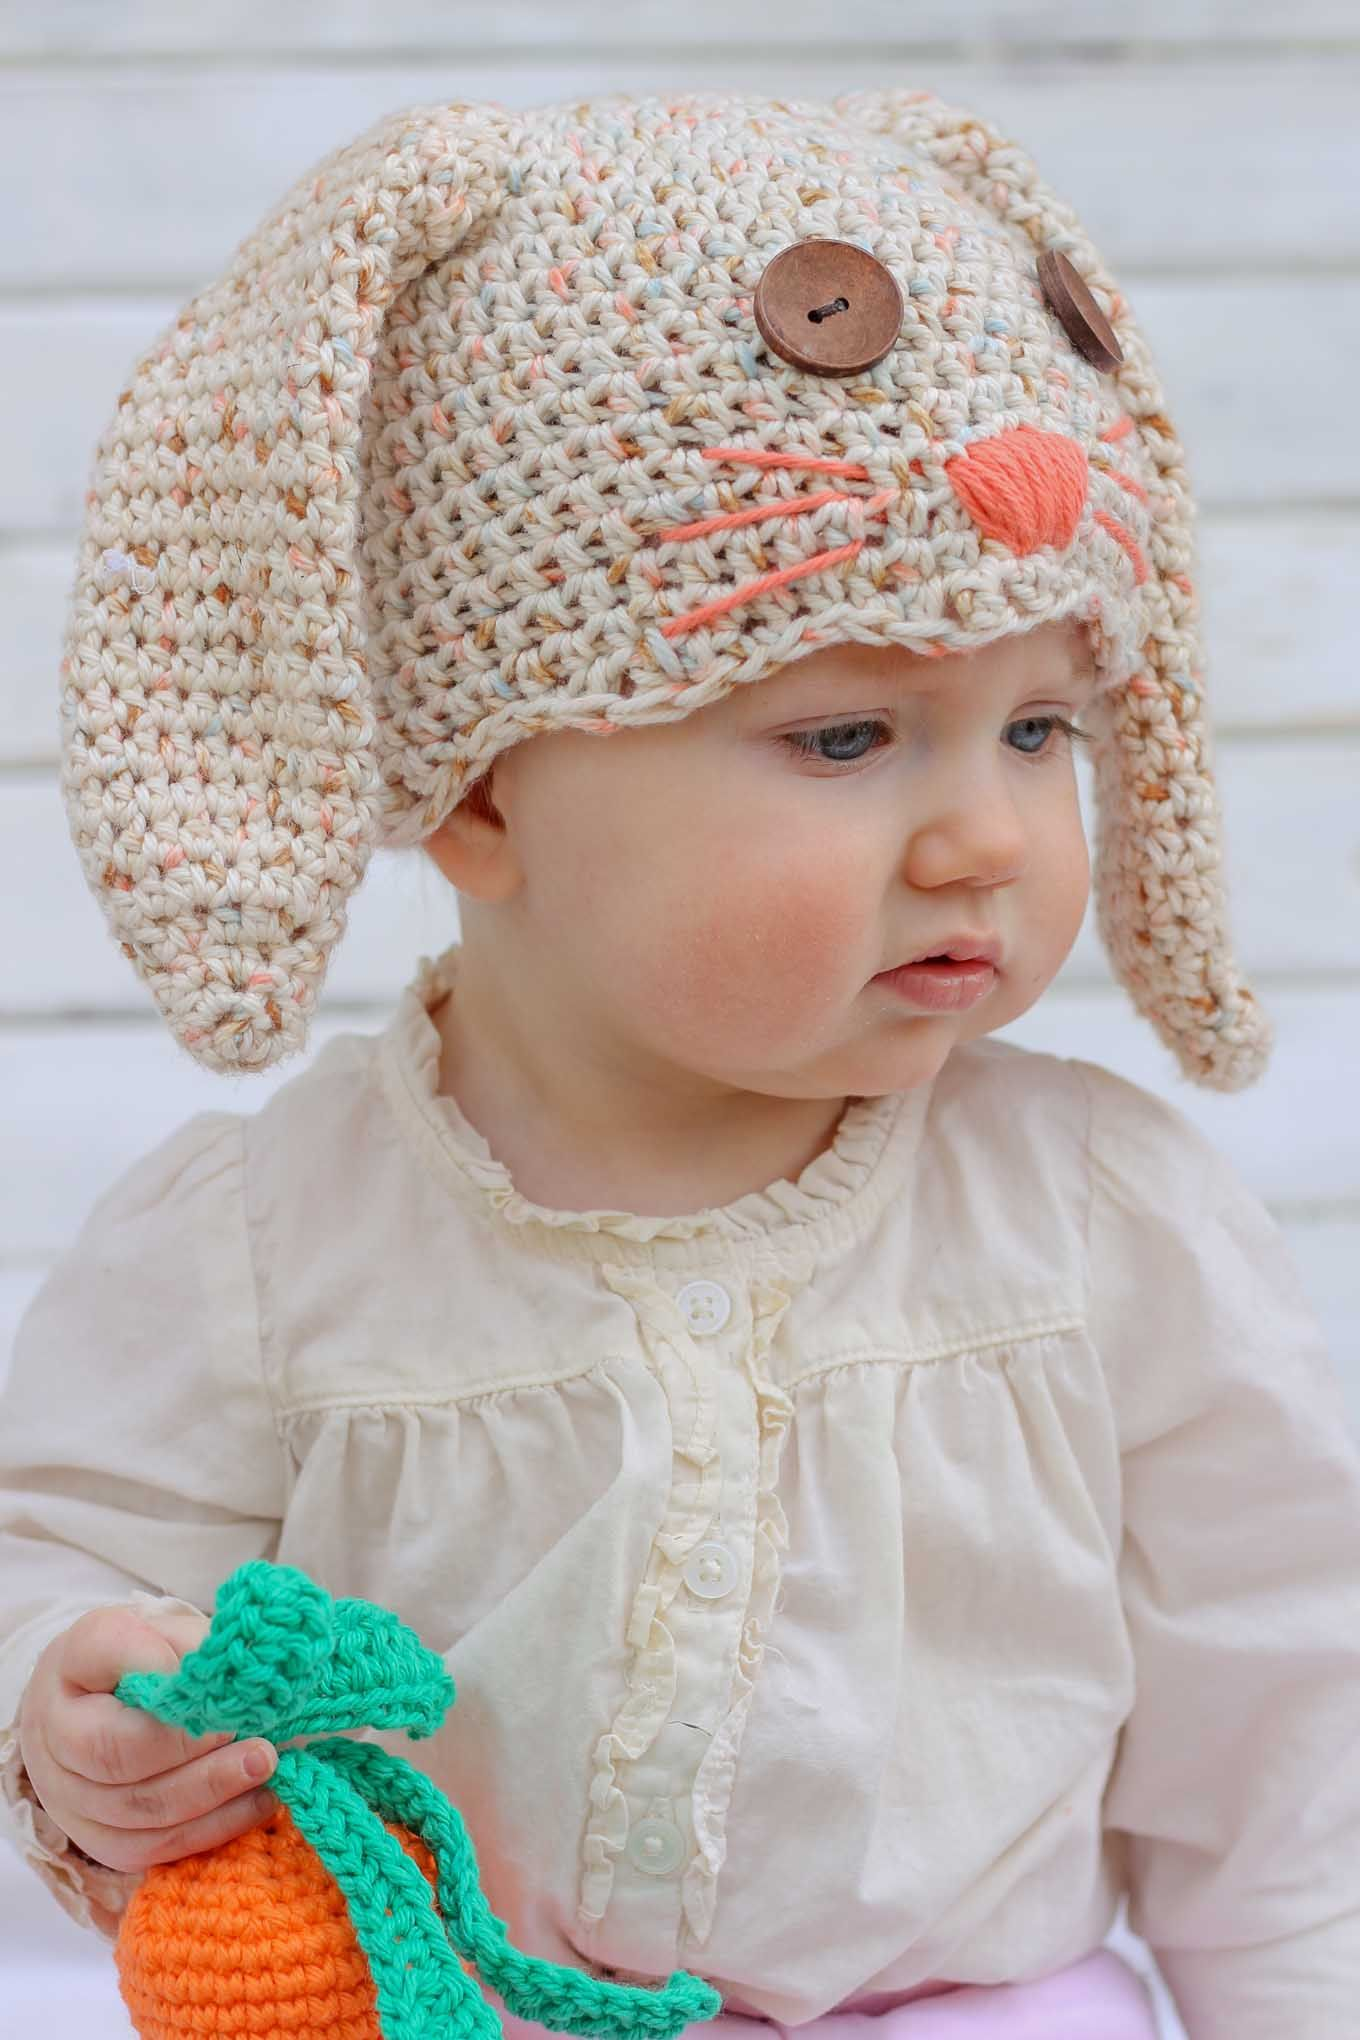 Free crochet bunny hat pattern newborn toddler hat patterns free crochet bunny hat pattern newborn toddler bankloansurffo Choice Image